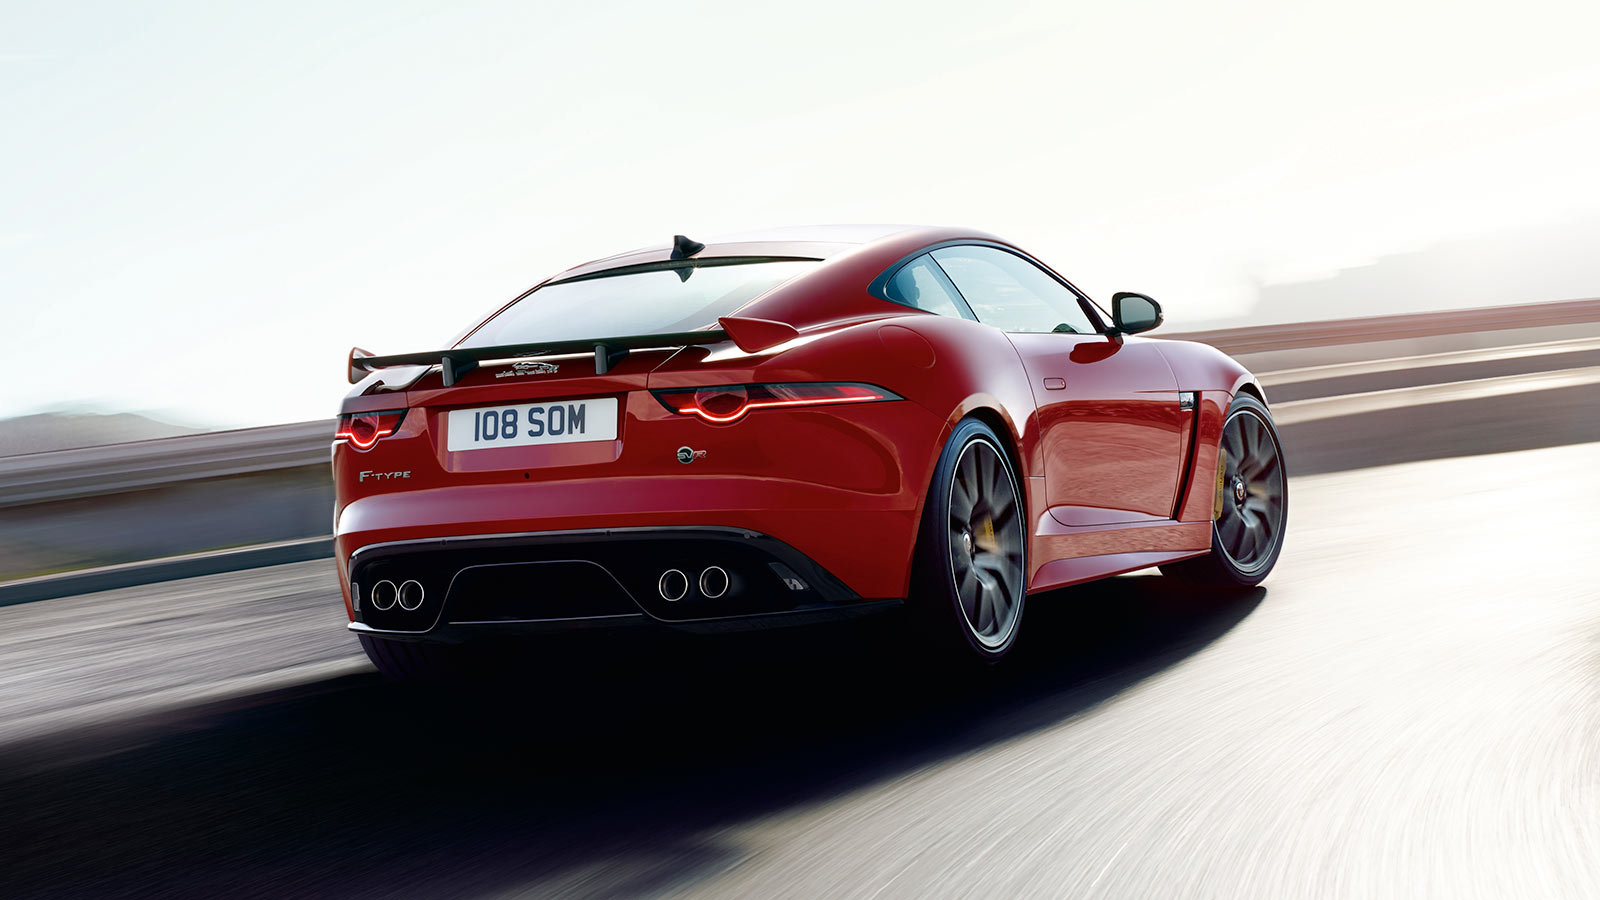 Jaguar F-TYPE 3.0 (380) S/C V6 Chequered Flag AWD SPECIAL EDITIONS image 6